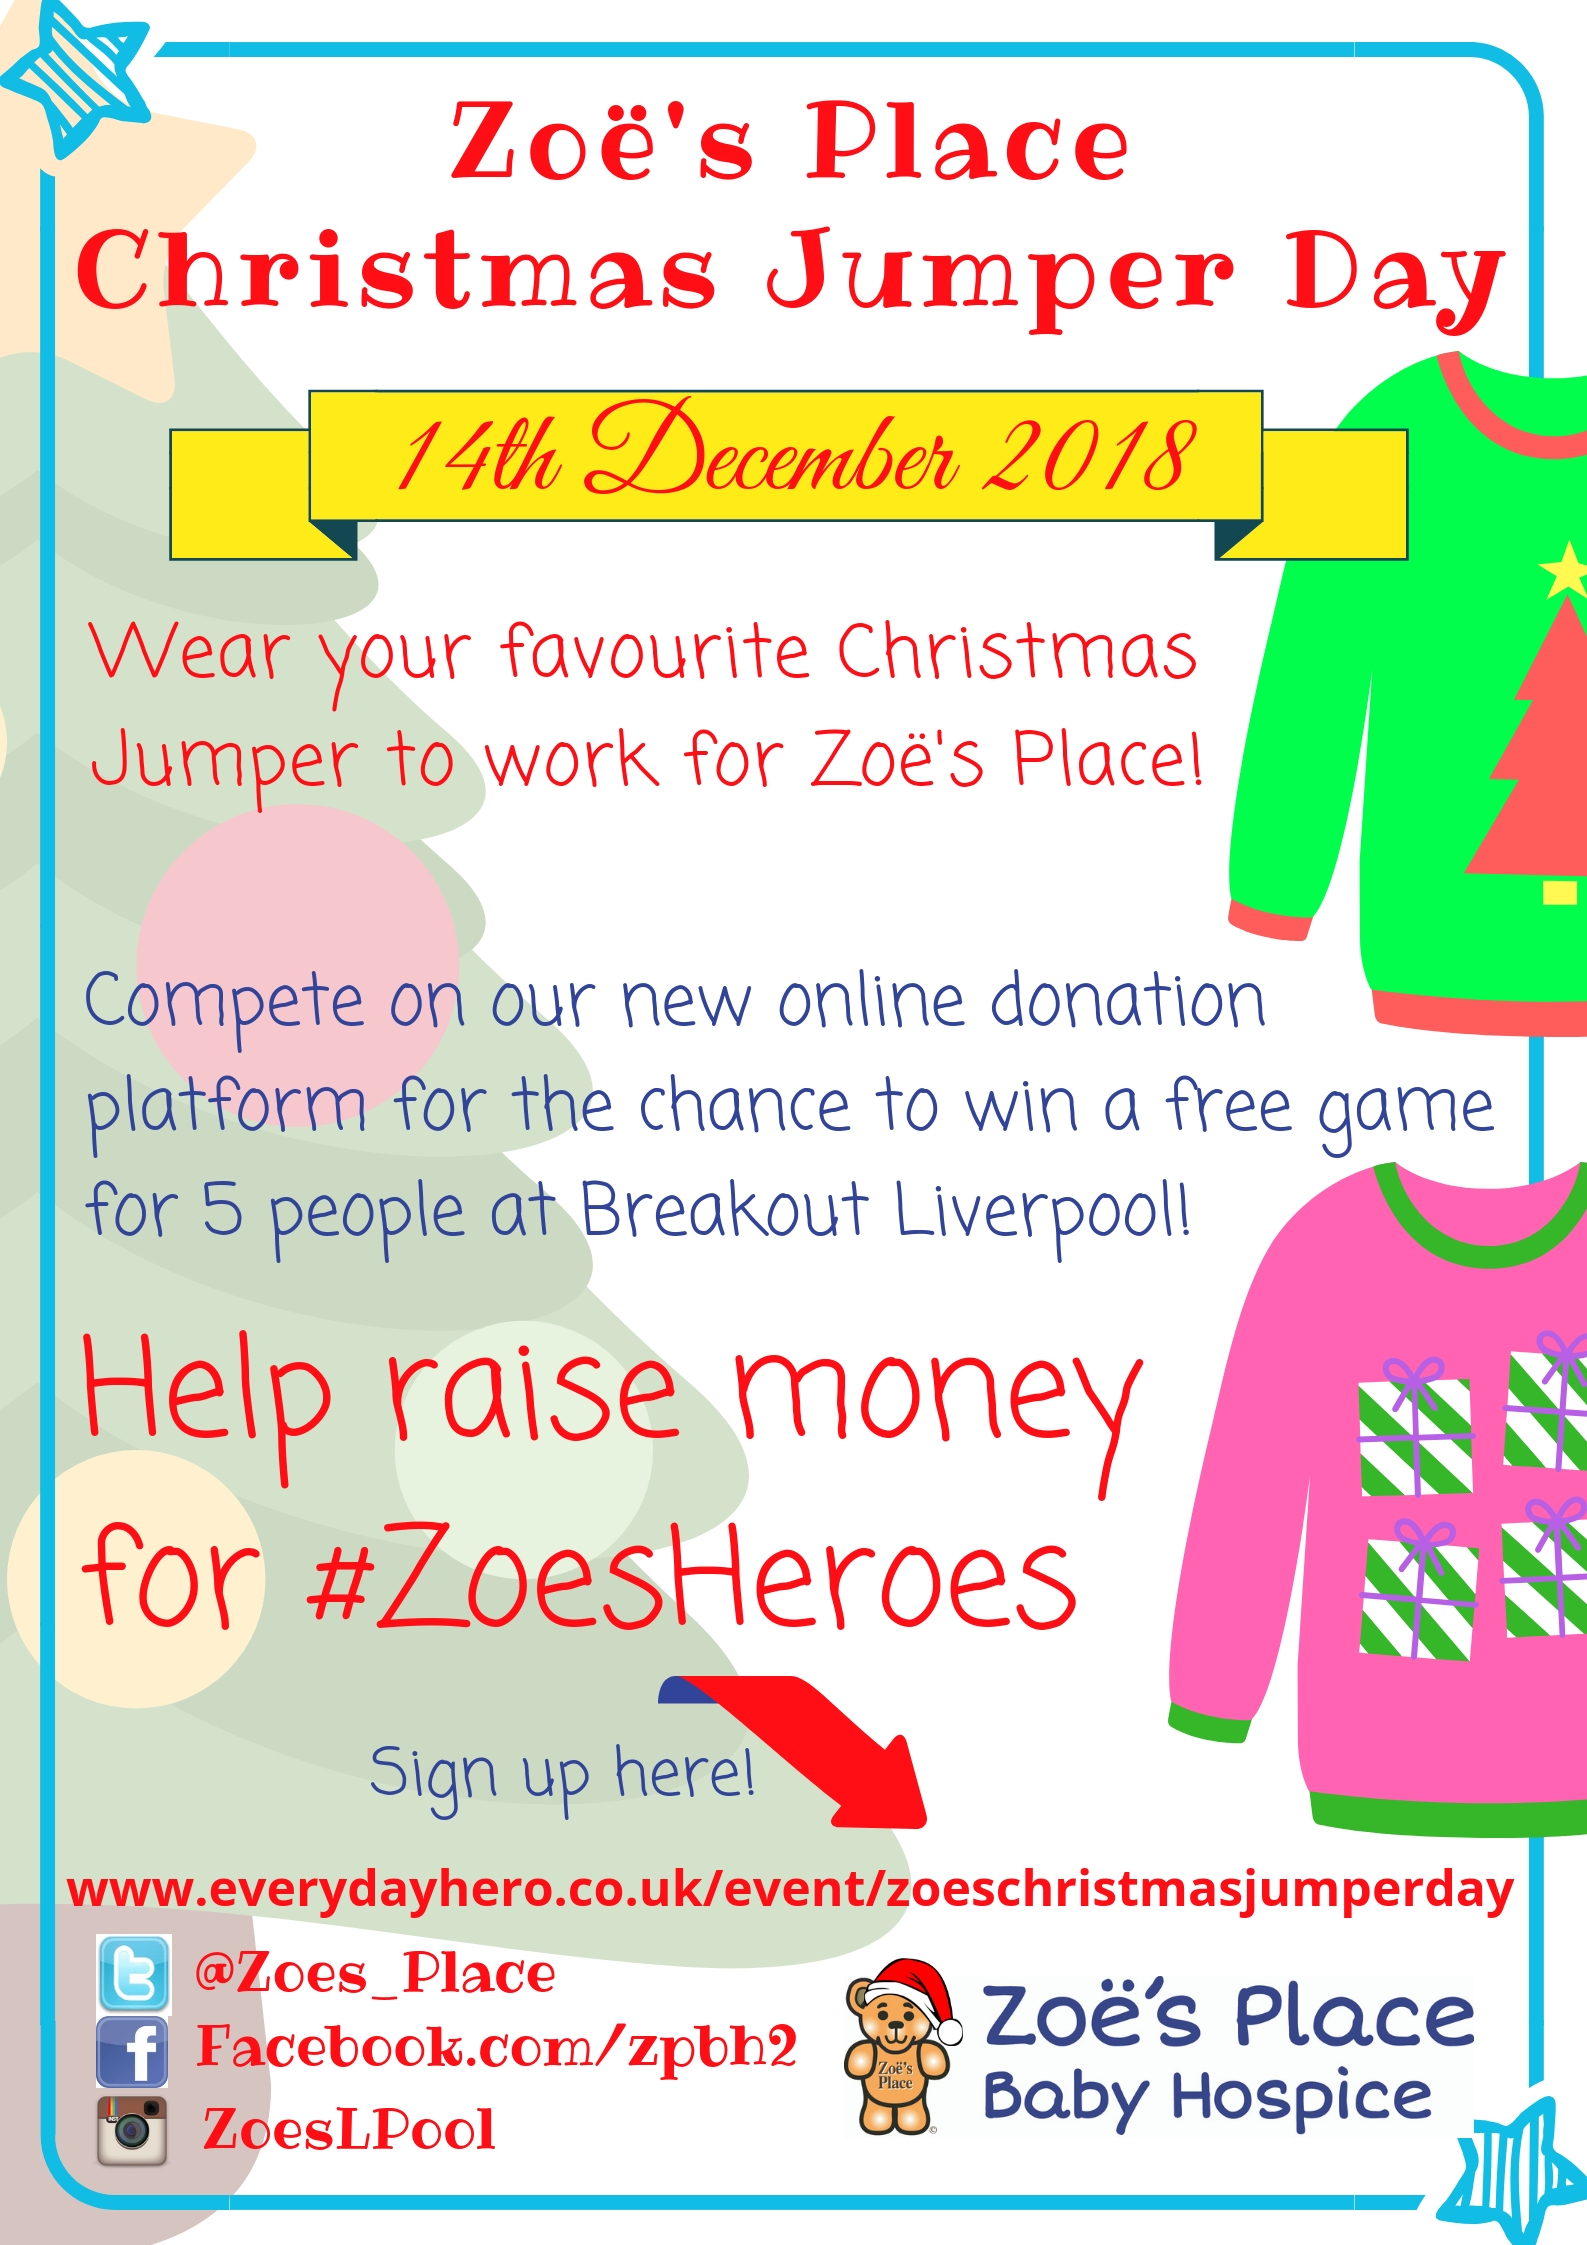 Christmas Jumper Day by Zoe's Place Baby Hospice - Liverpool fundraising photo 1